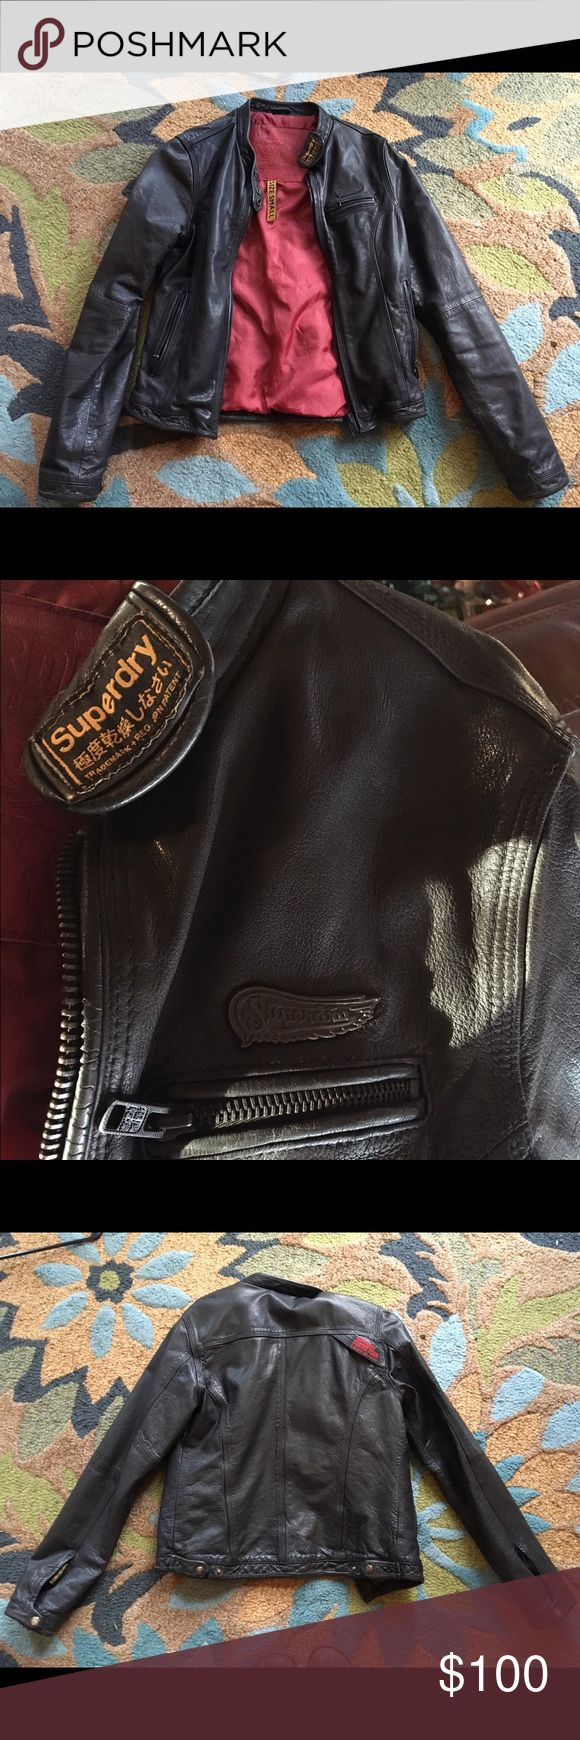 Women's Superdry Leather Jacket Small This is an amazing leather jacket. I bought this in England for around $300 a few years ago. Its in great condition and well made. Superdry Jackets & Coats